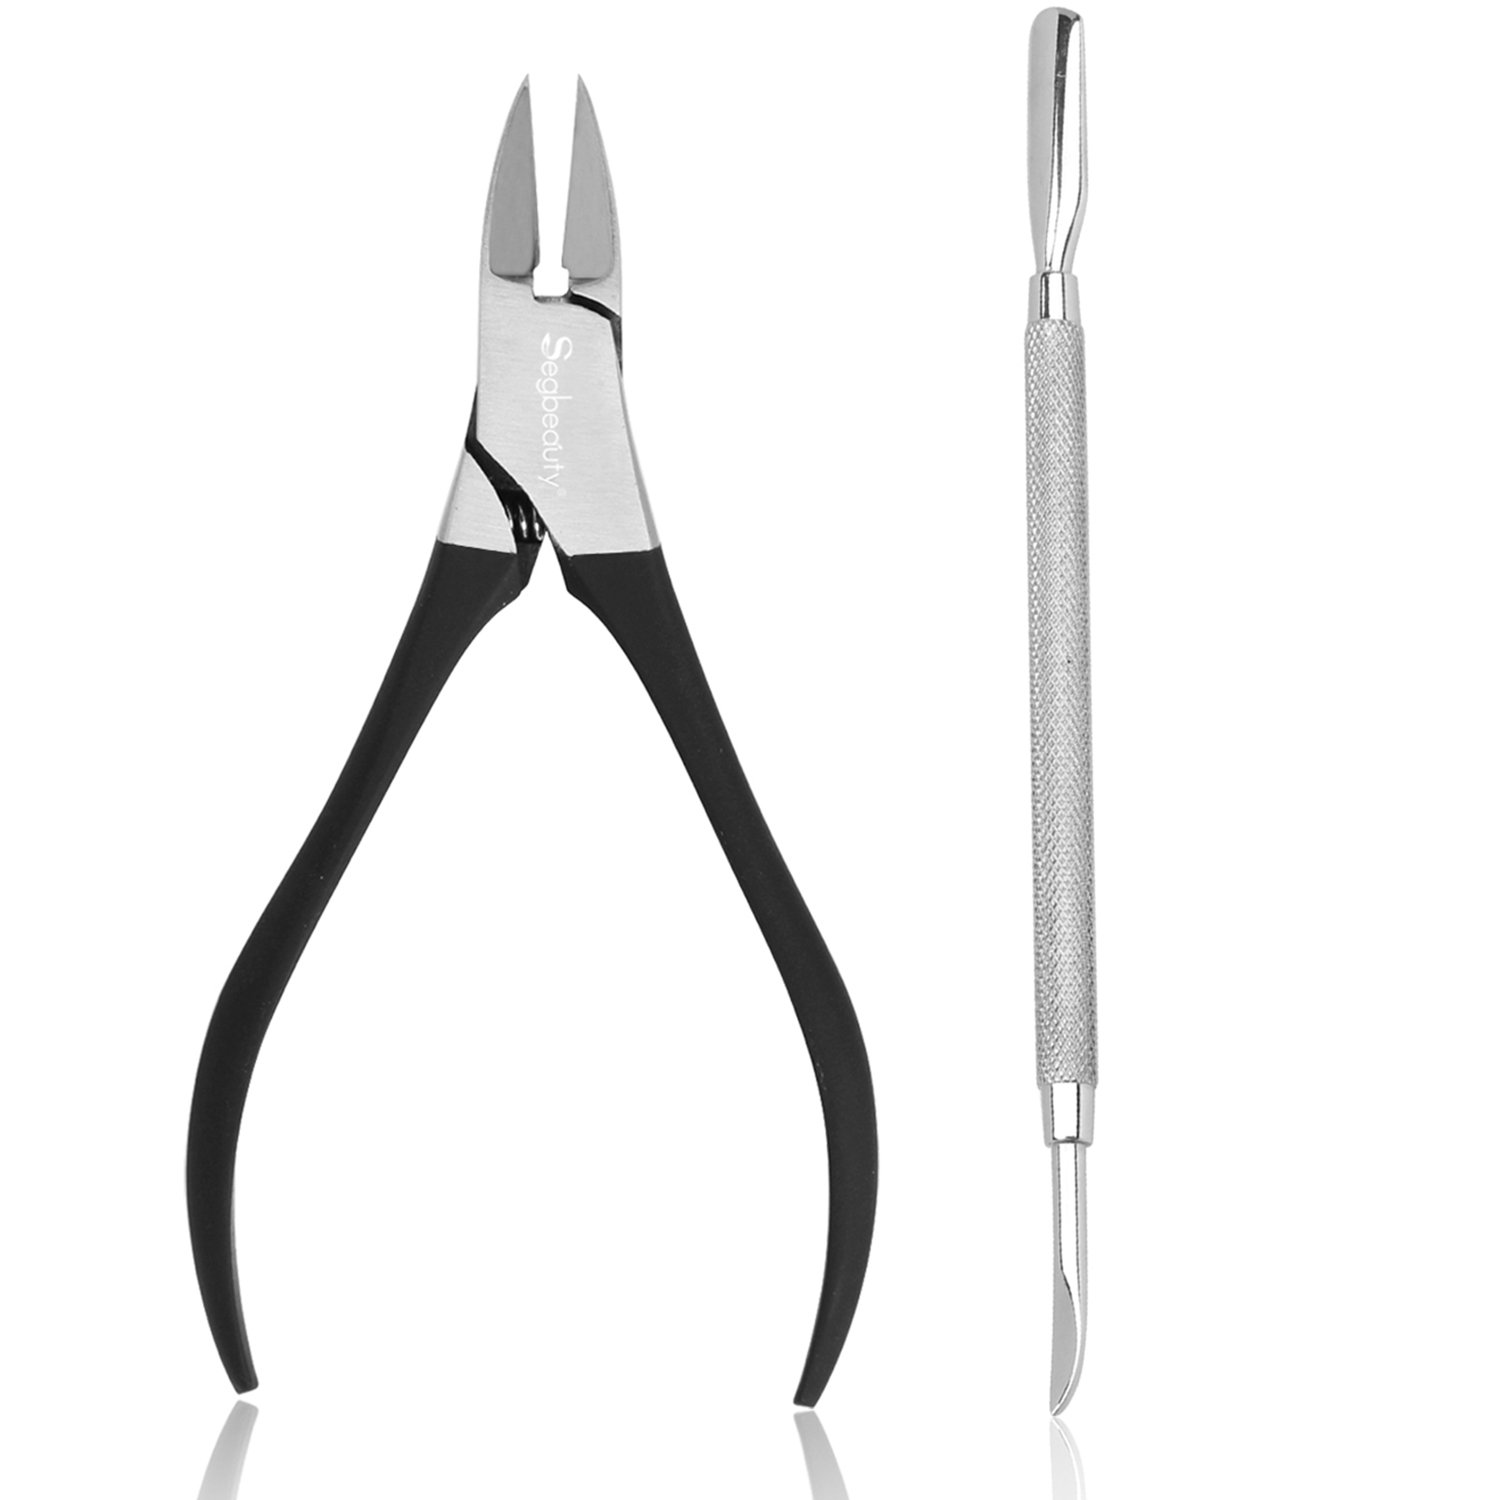 Nail Salons Manicure Pedicure Nail Clipper Set Nail Art Kit by Segbeauty, Stainless Steel Nail Nipper Cuticle Pusher 1/2 Jaw Ingrown Toenail Remover, Professional Nail Care Cuticle Trimmer